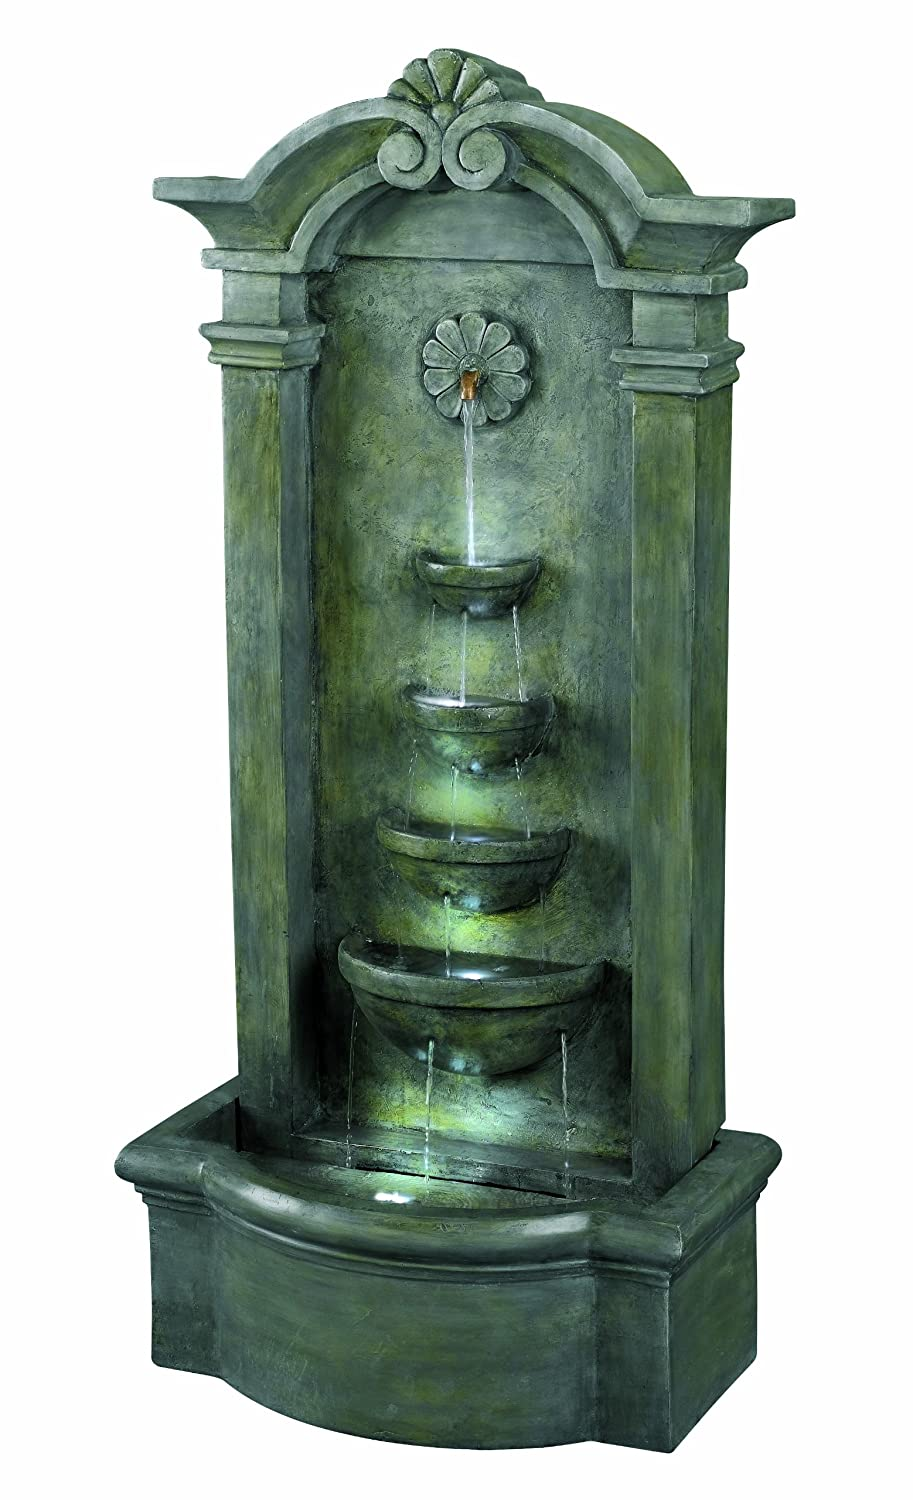 Ordinaire Amazon.com: Kenroy Home #53245MS Sienna Outdoor Floor Fountain In Mossy  Stone Finish: Home U0026 Kitchen